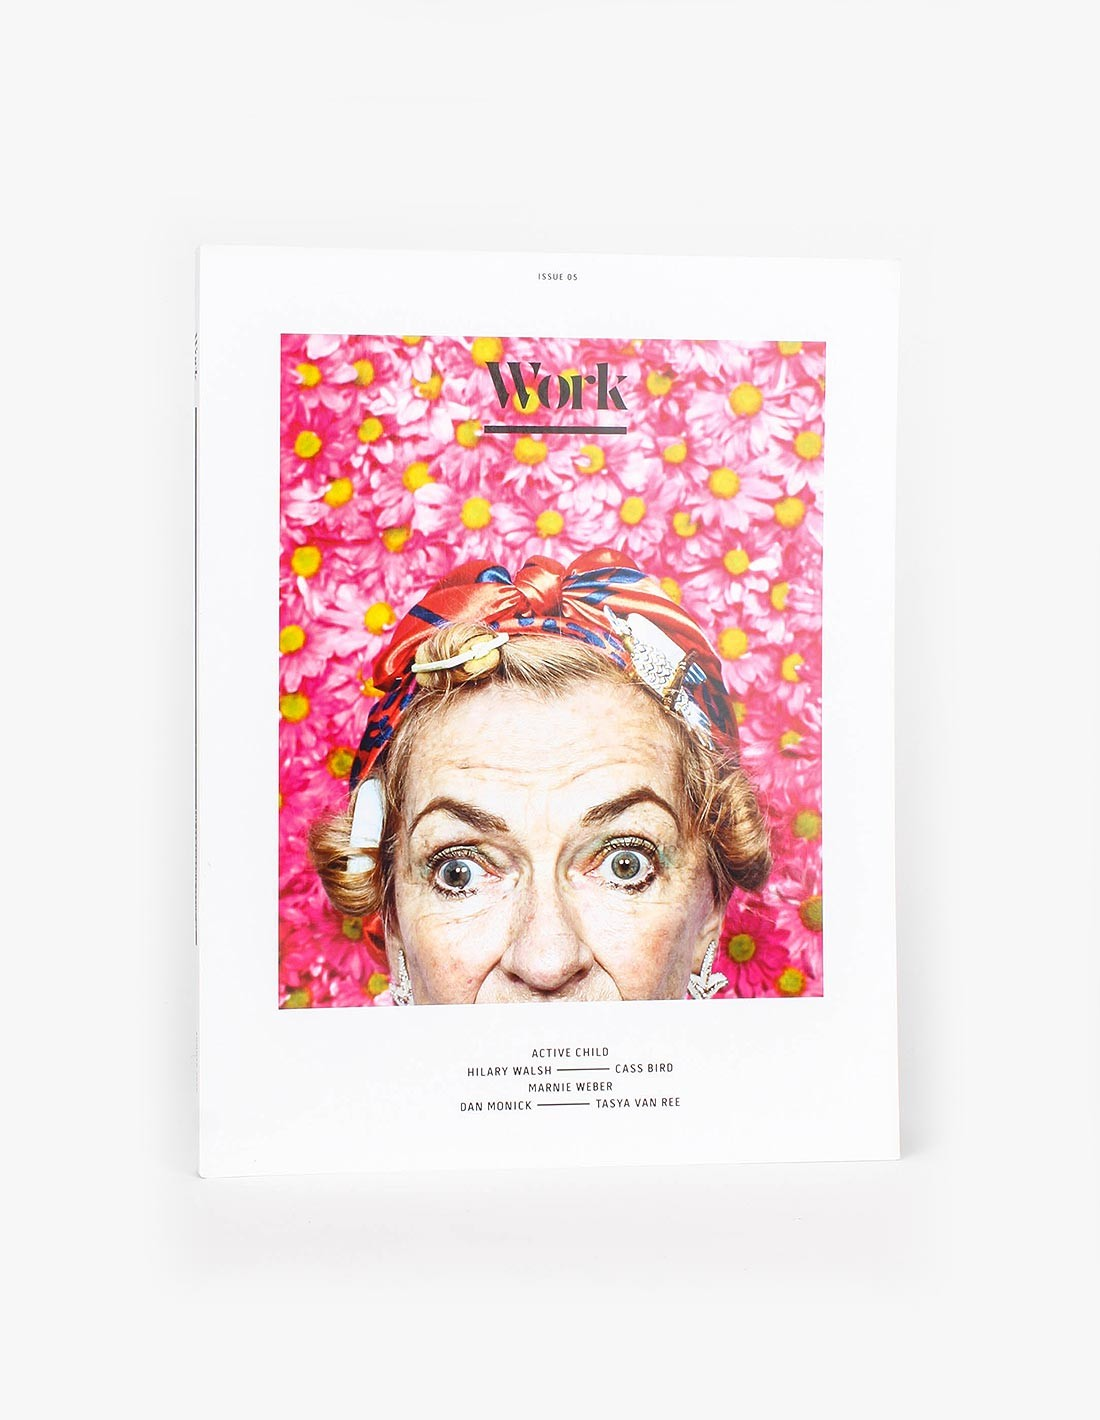 The WORK Magazine in